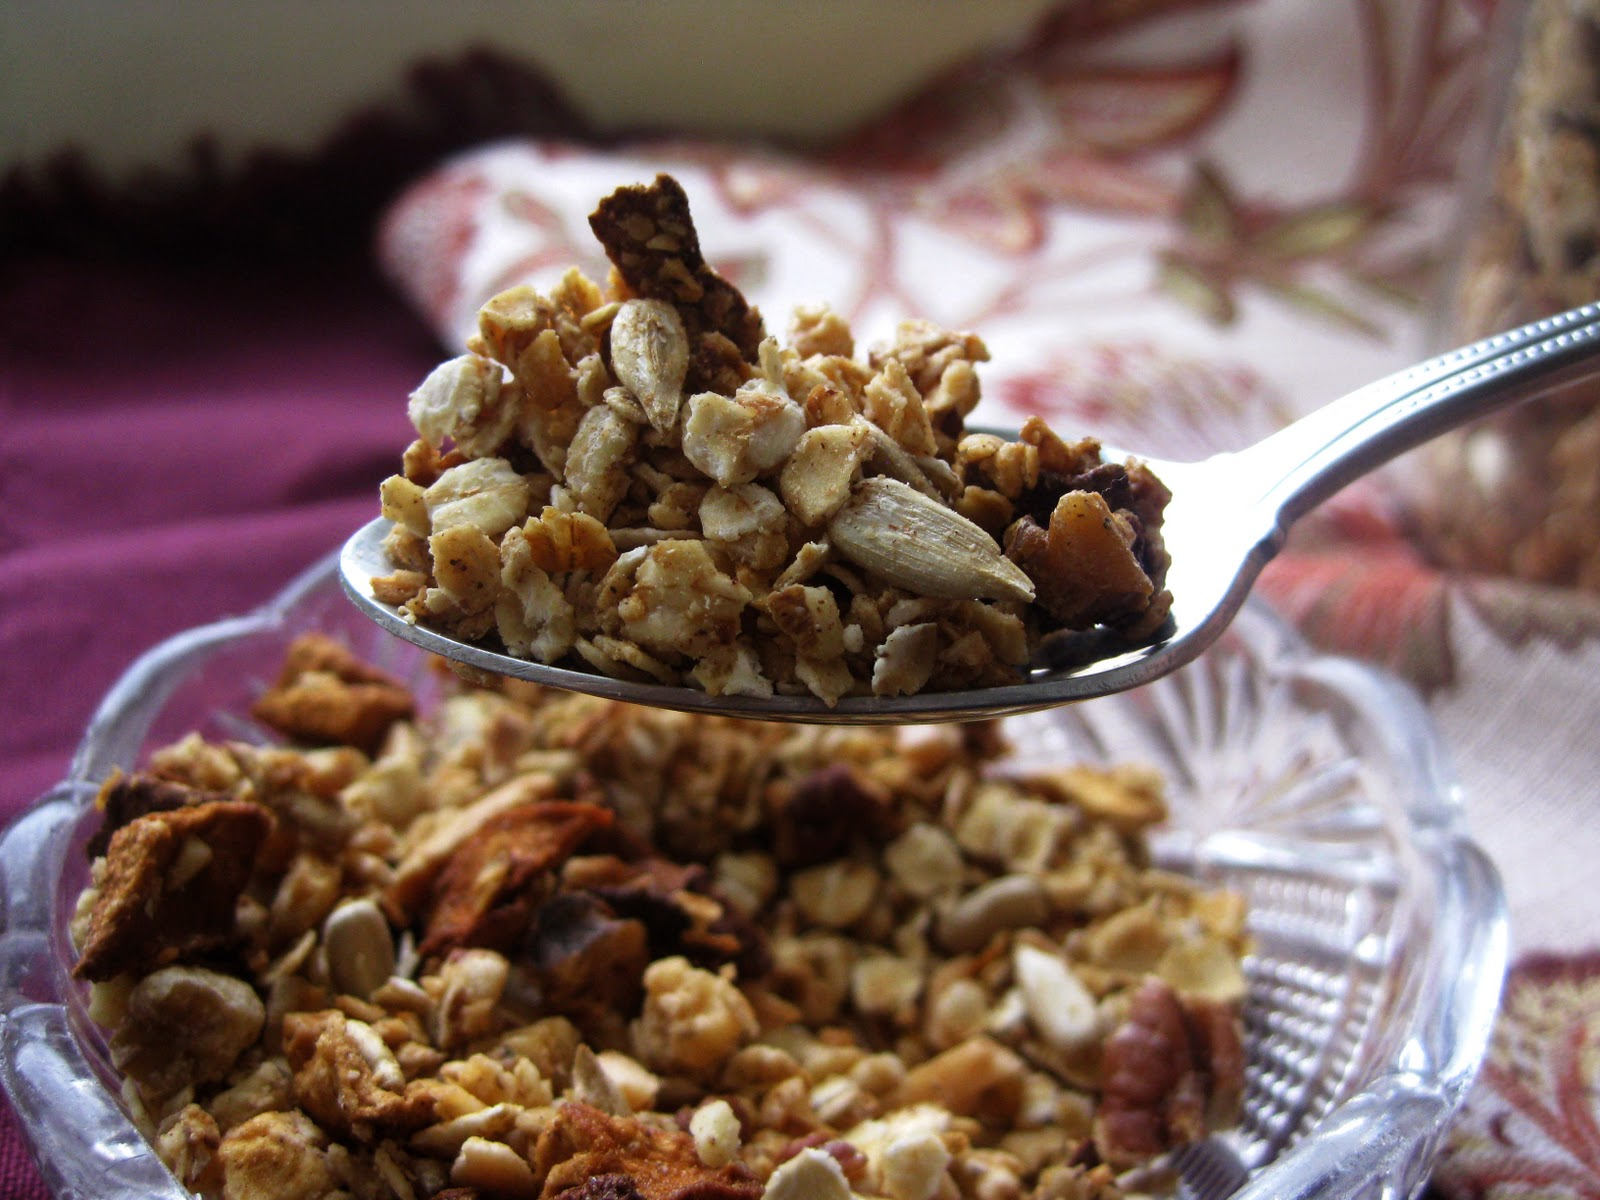 The Best Gluten-Free and Clean Granola